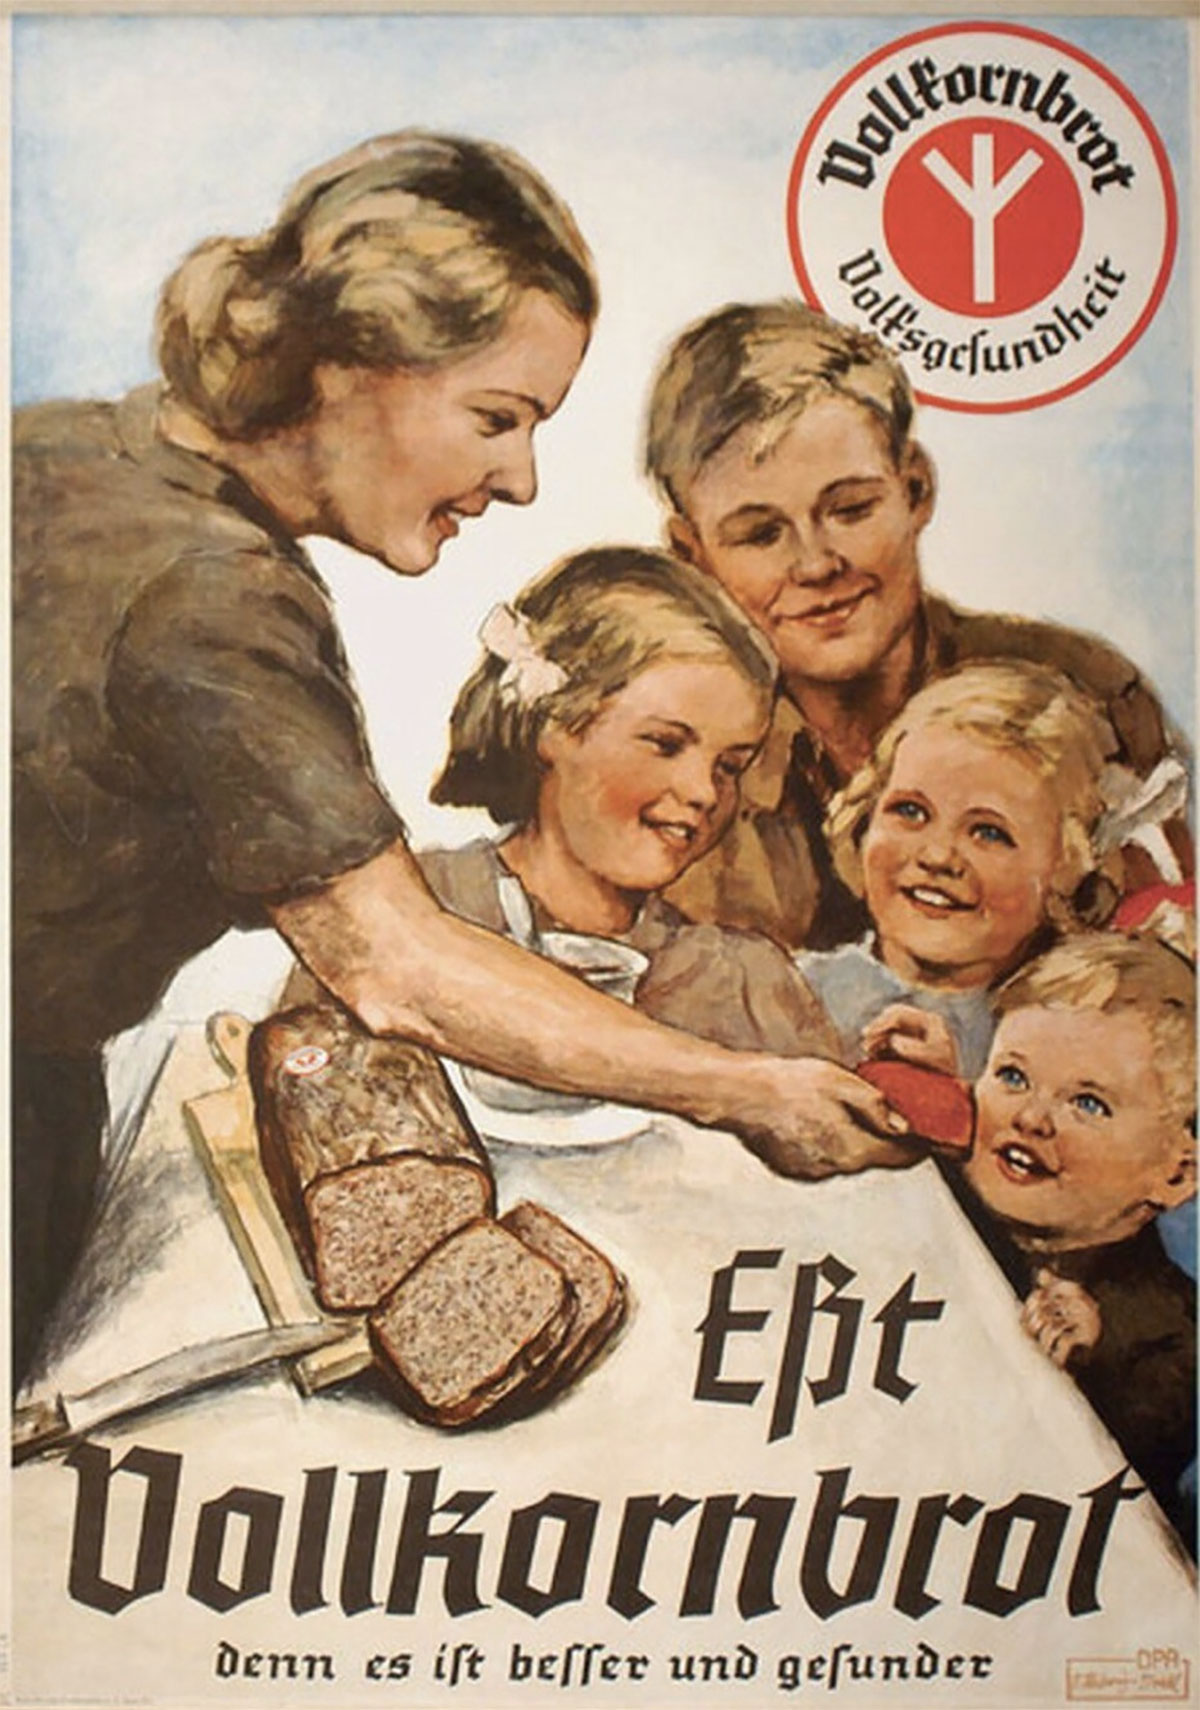 Kinder Küche Kirche Propaganda - Nazi Propaganda And The Bandwagon Effect The Swamp